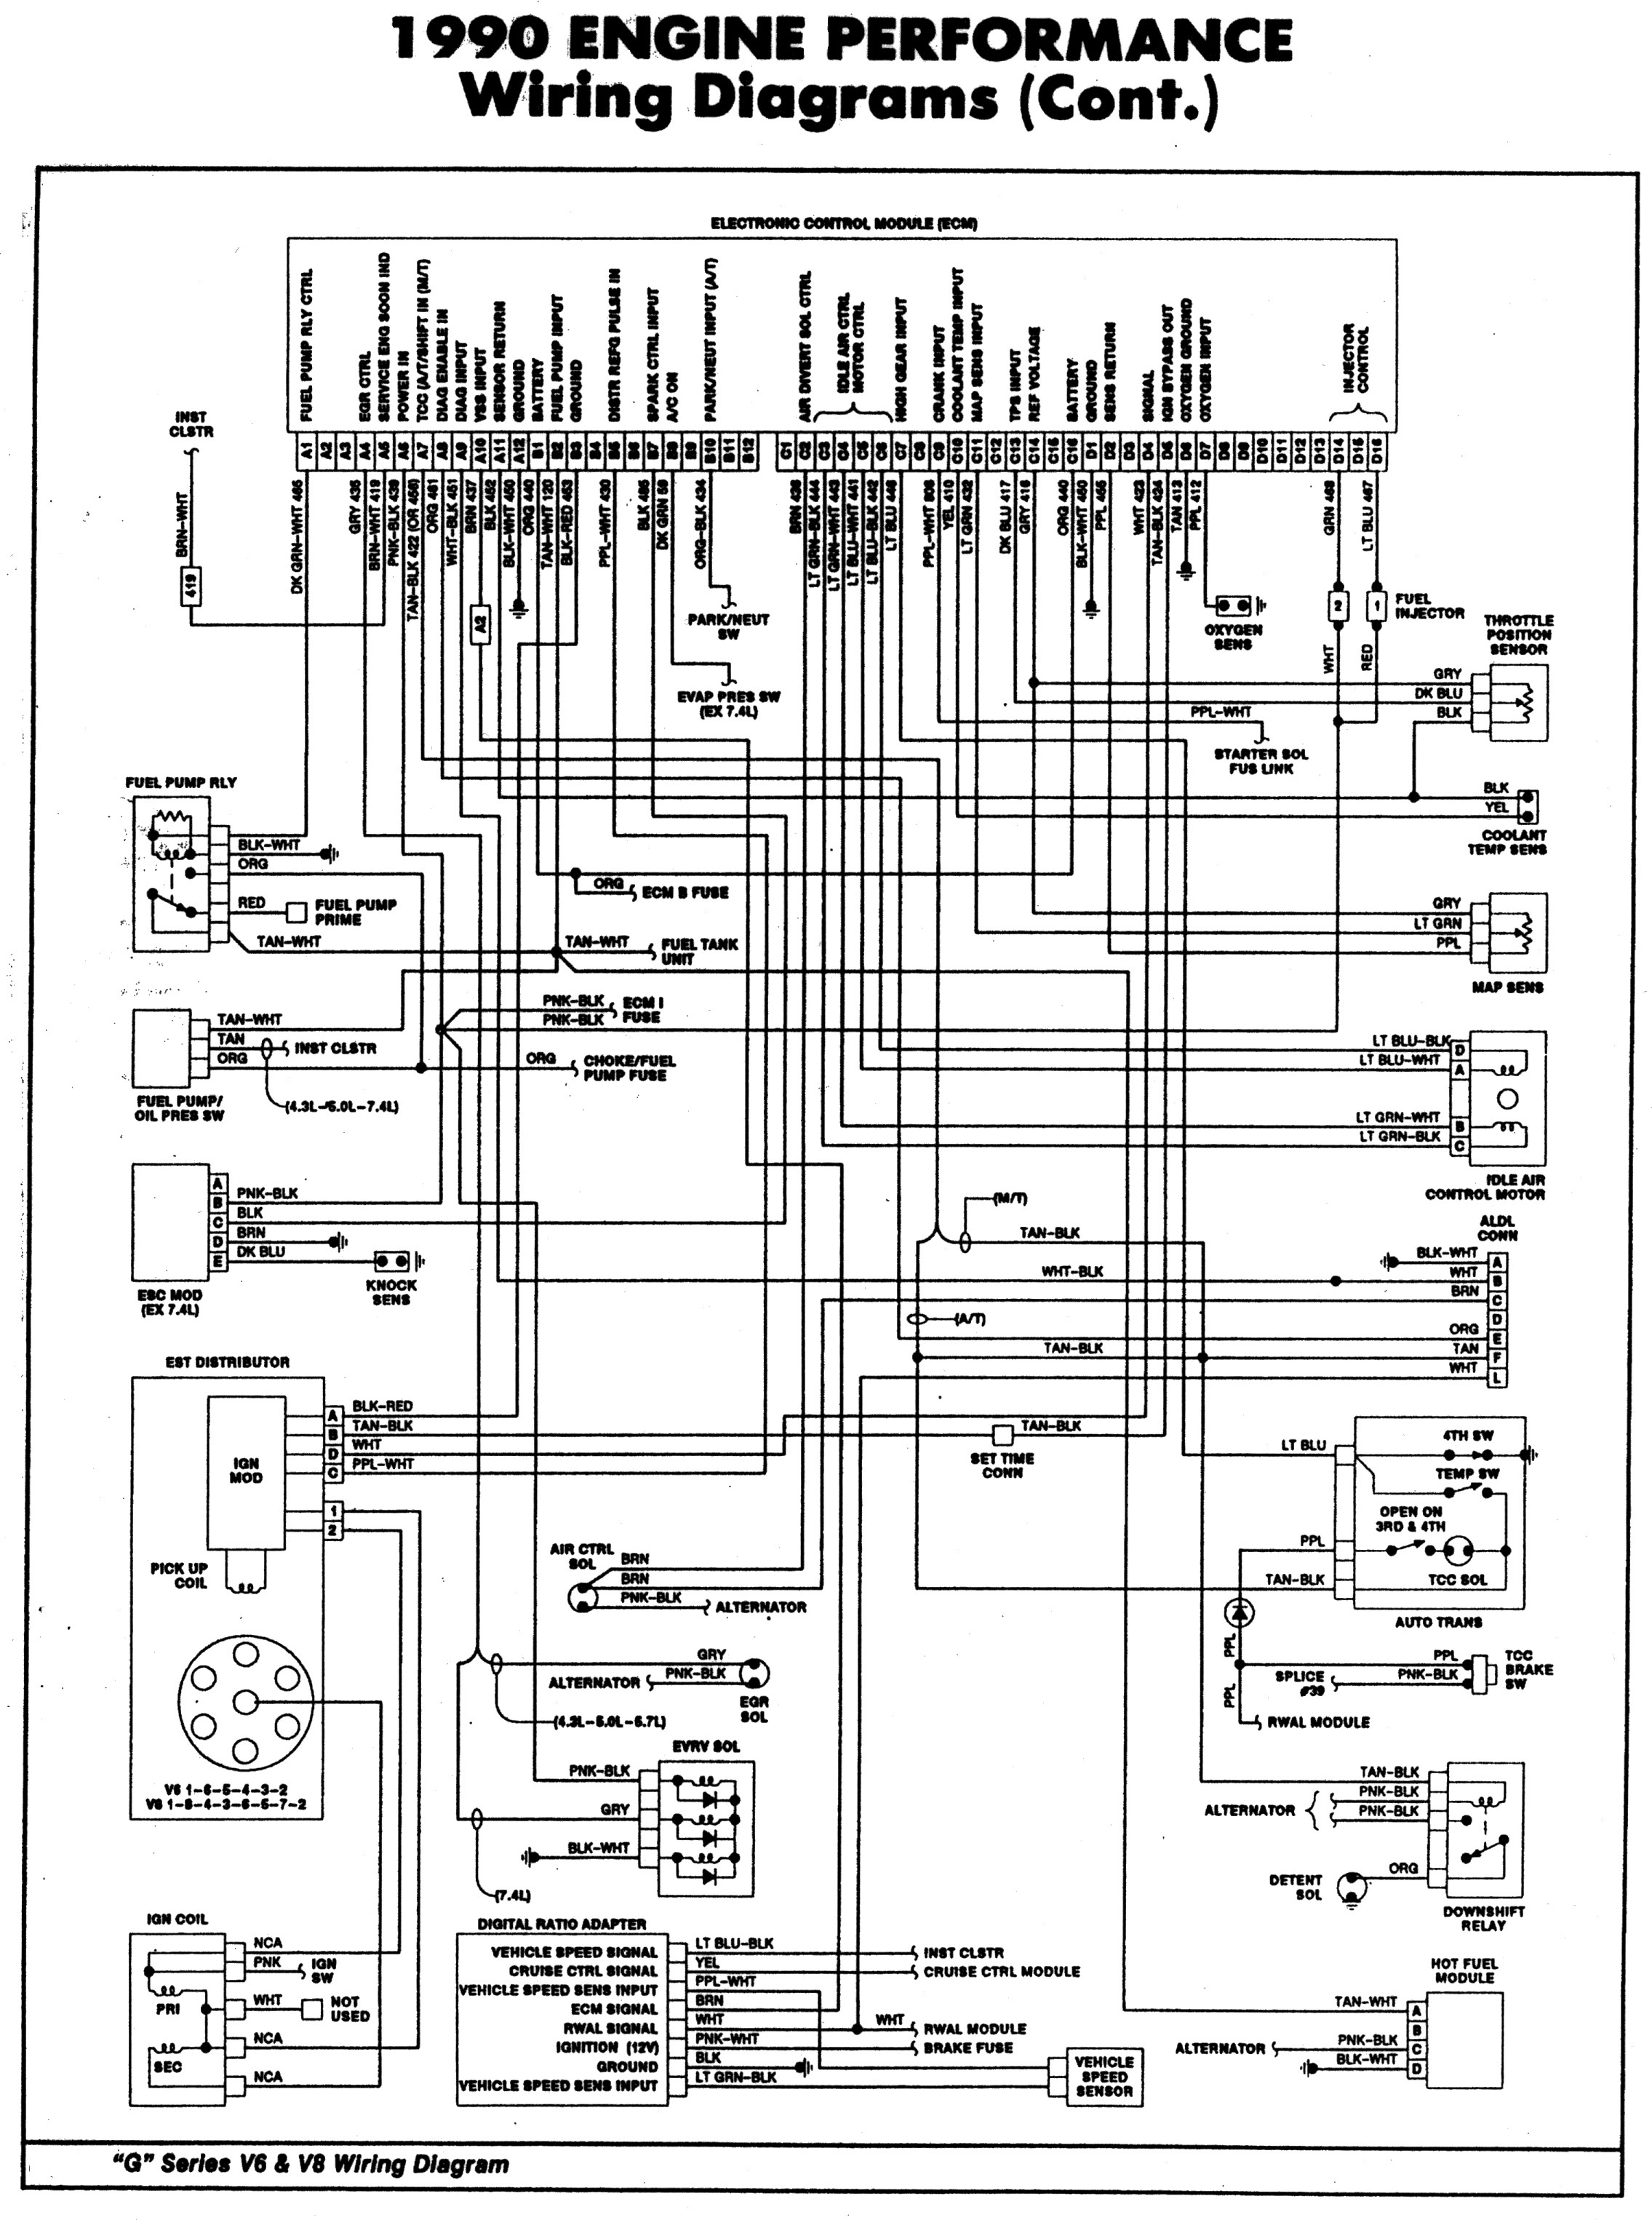 1989 chevy pickup wiring diagram everything wiring diagram 1989 dodge pickup wiring diagram 89 chevy pickup [ 2271 x 3051 Pixel ]